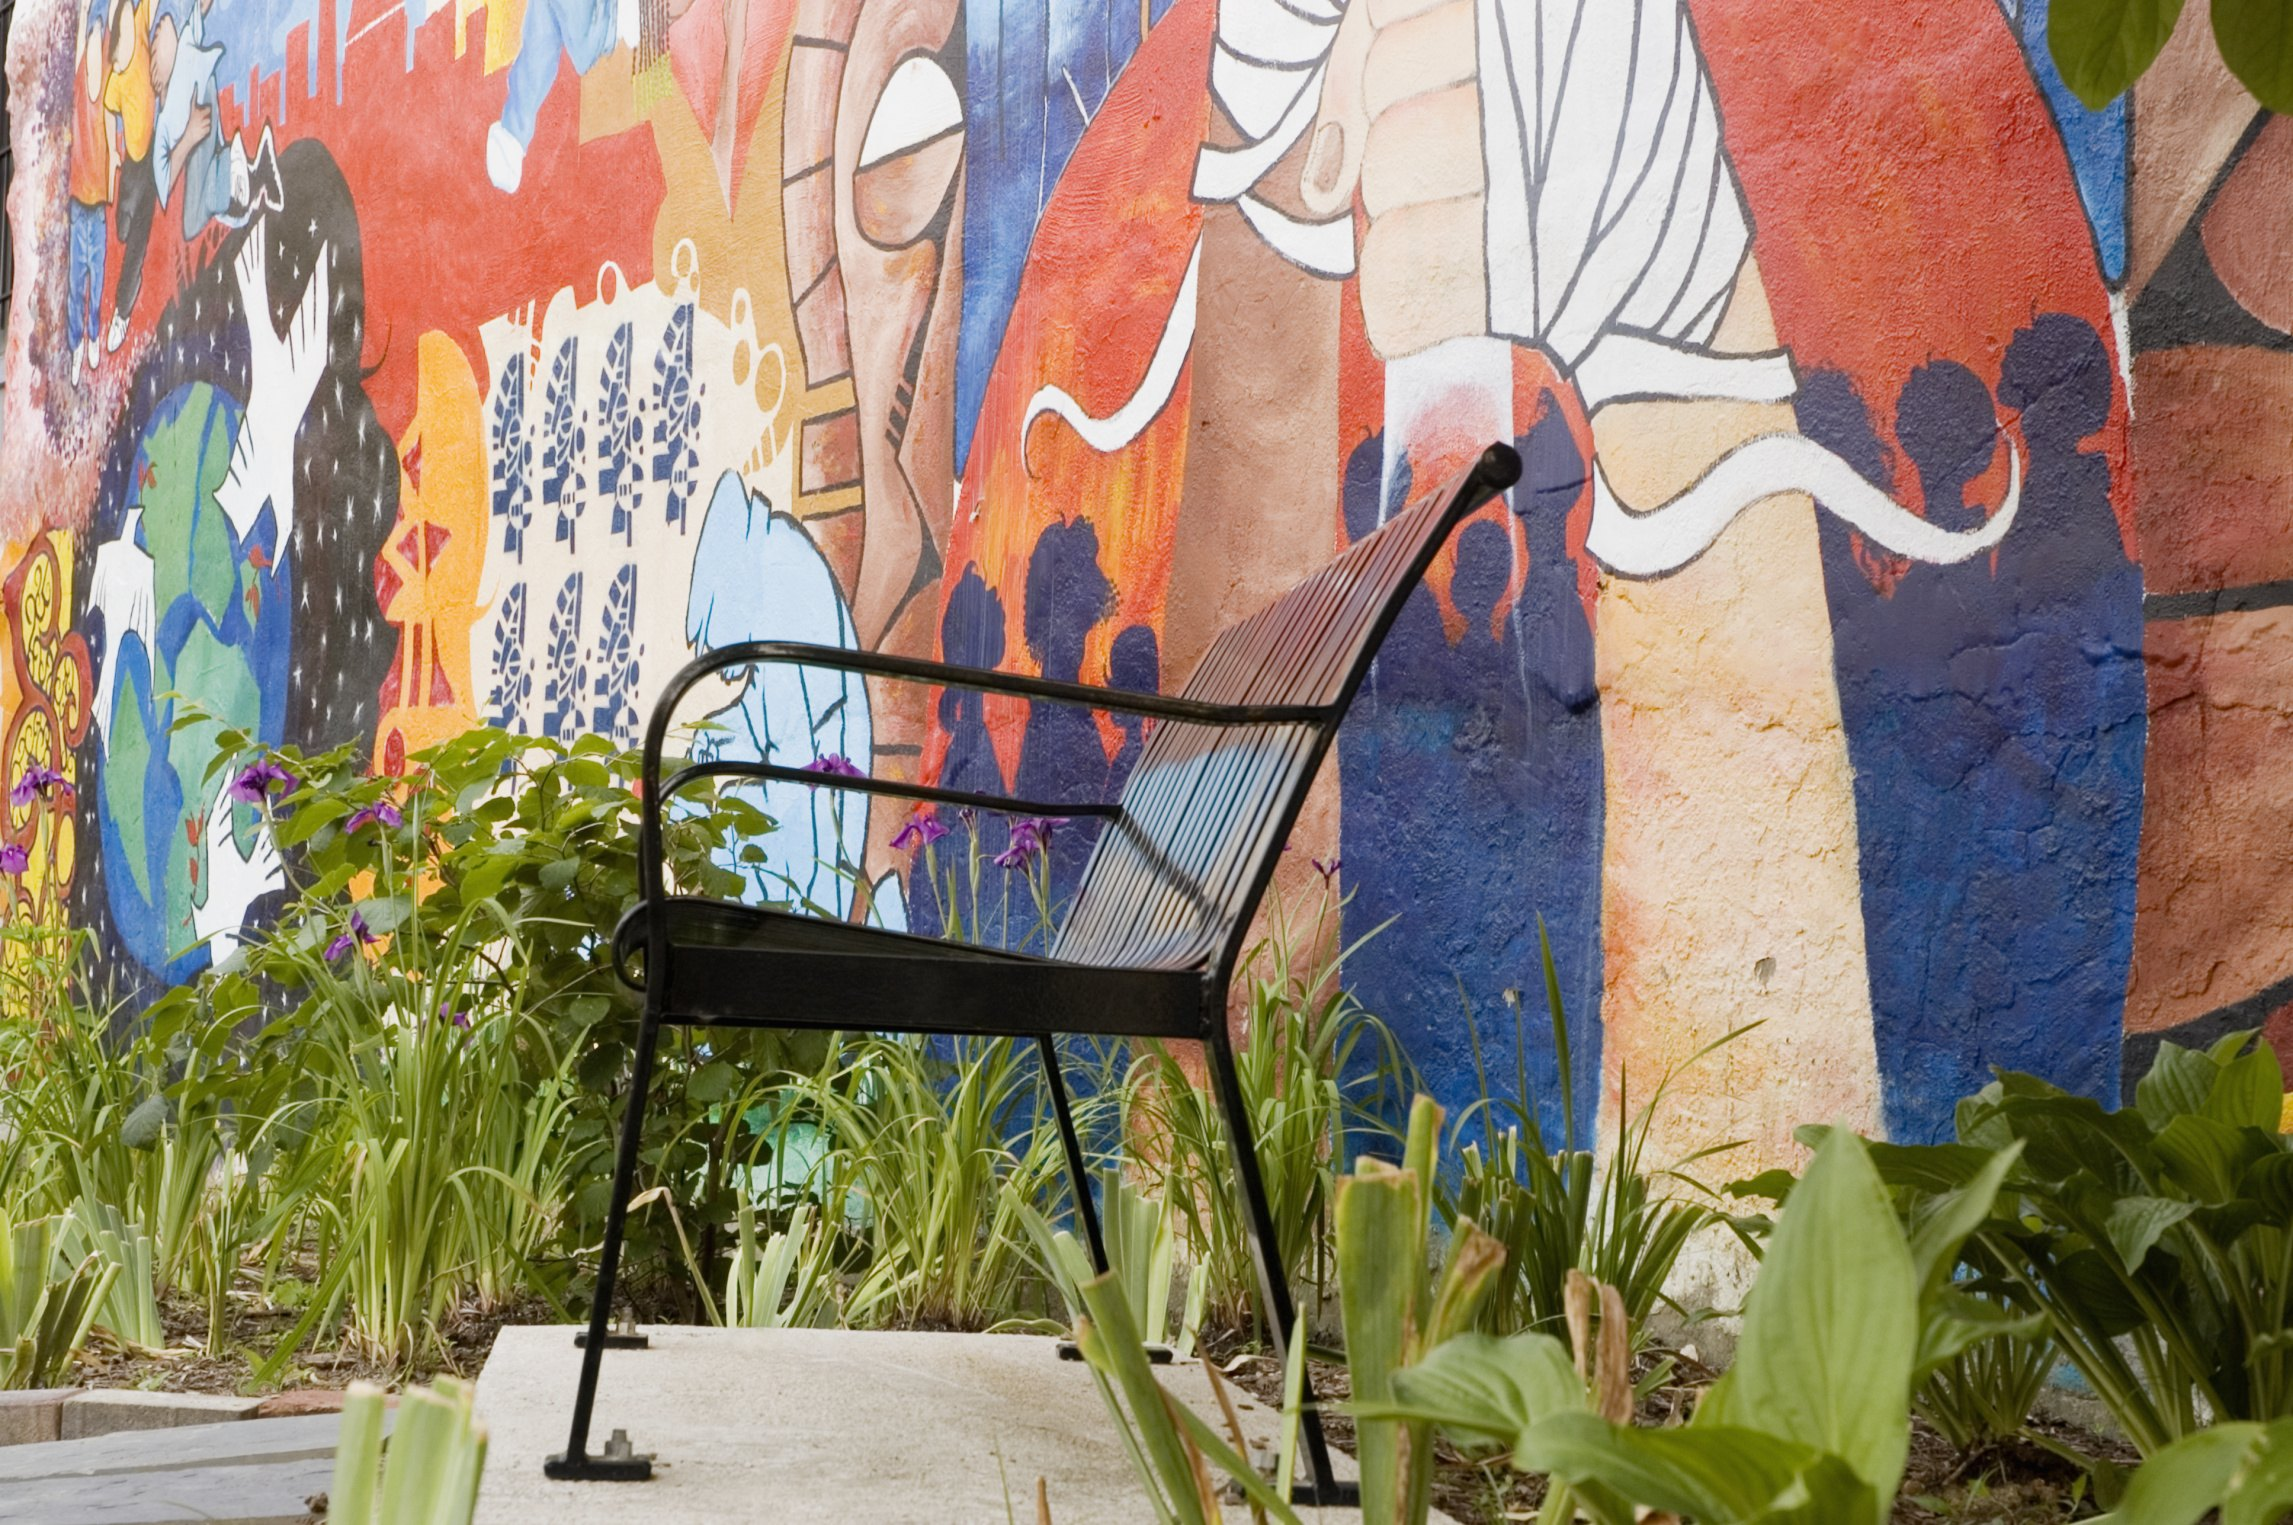 How to protect outdoor murals ehow for Pintar paredes exteriores